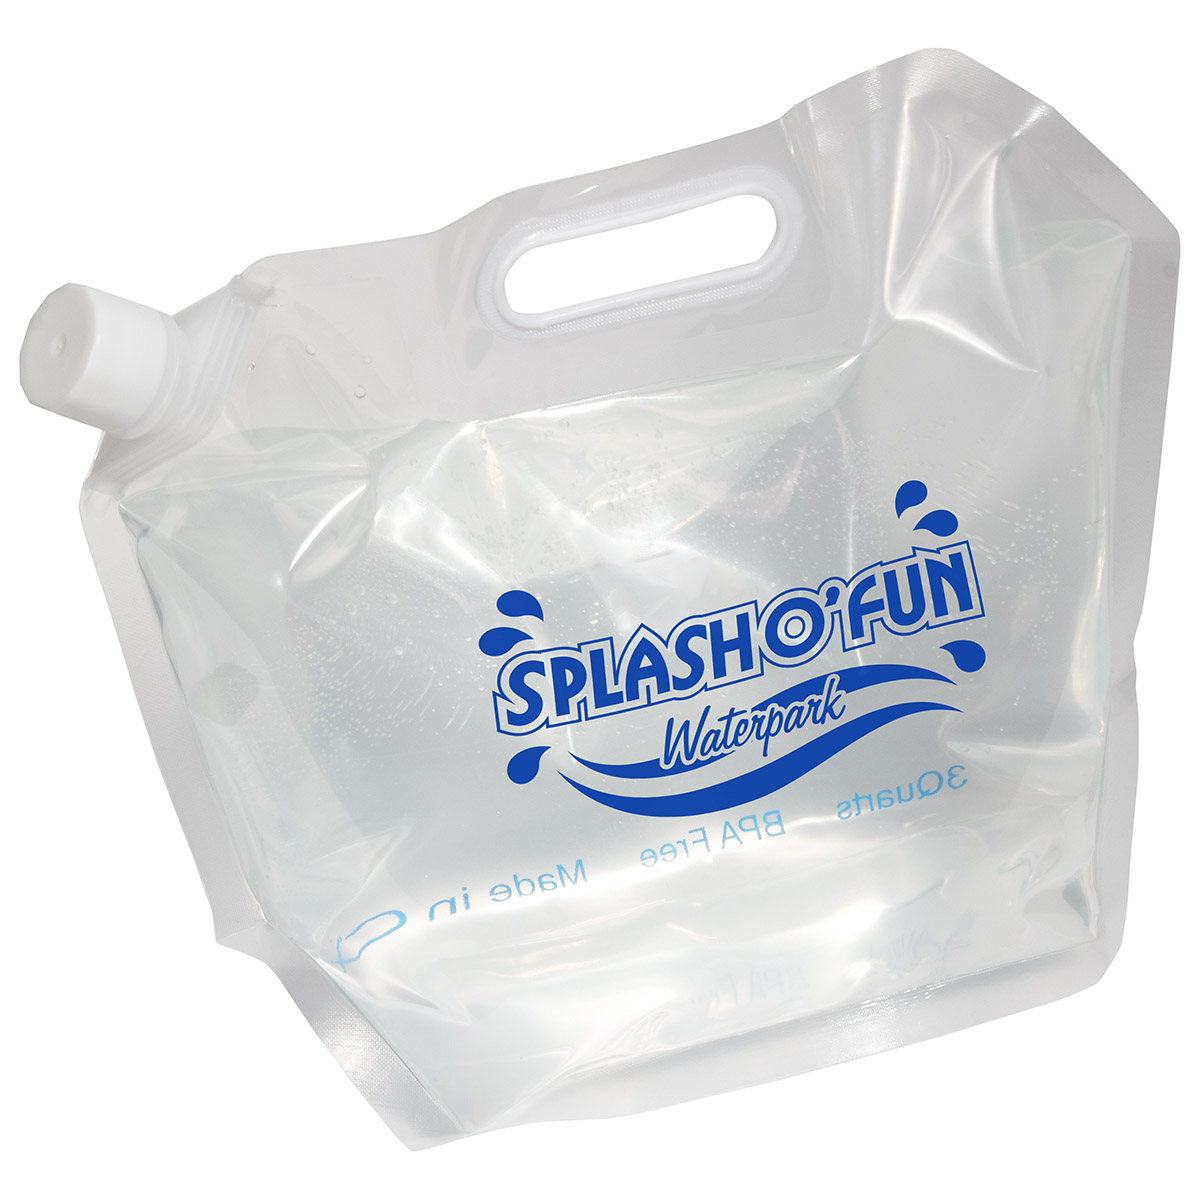 H2O Easy Tote Water Bag, WKA-WB15 - 1 Colour Imprint